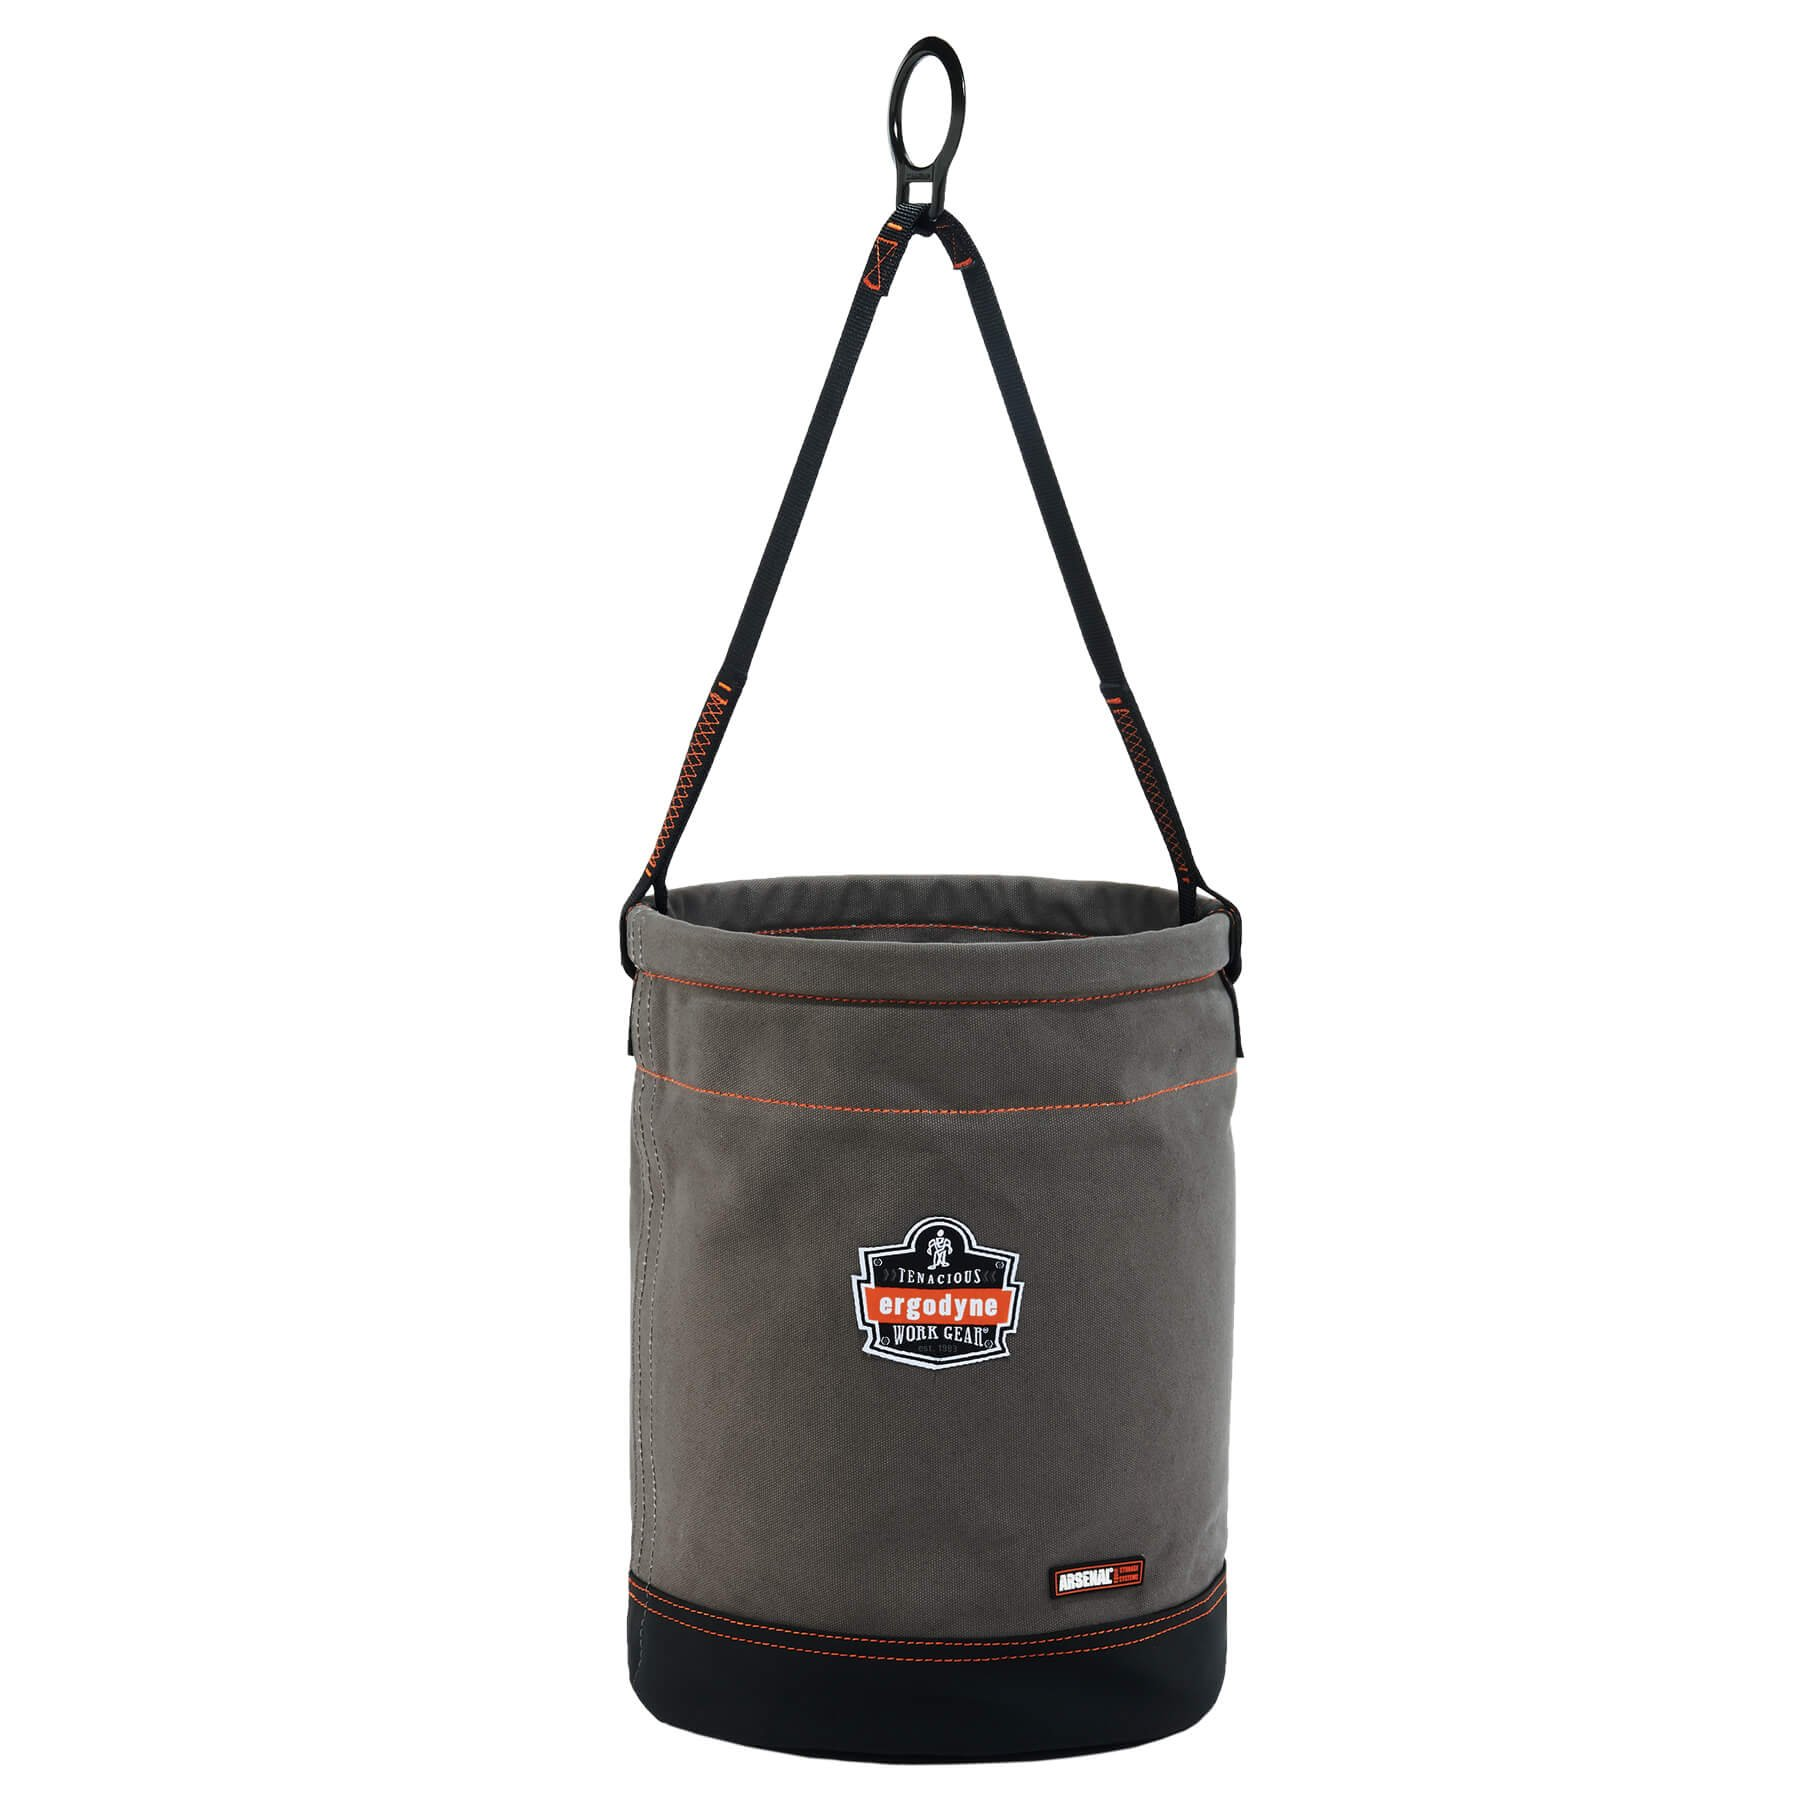 Ergodyne Arsenal 5960 Large Canvas Tool Bucket with Attachment Rings, Gray